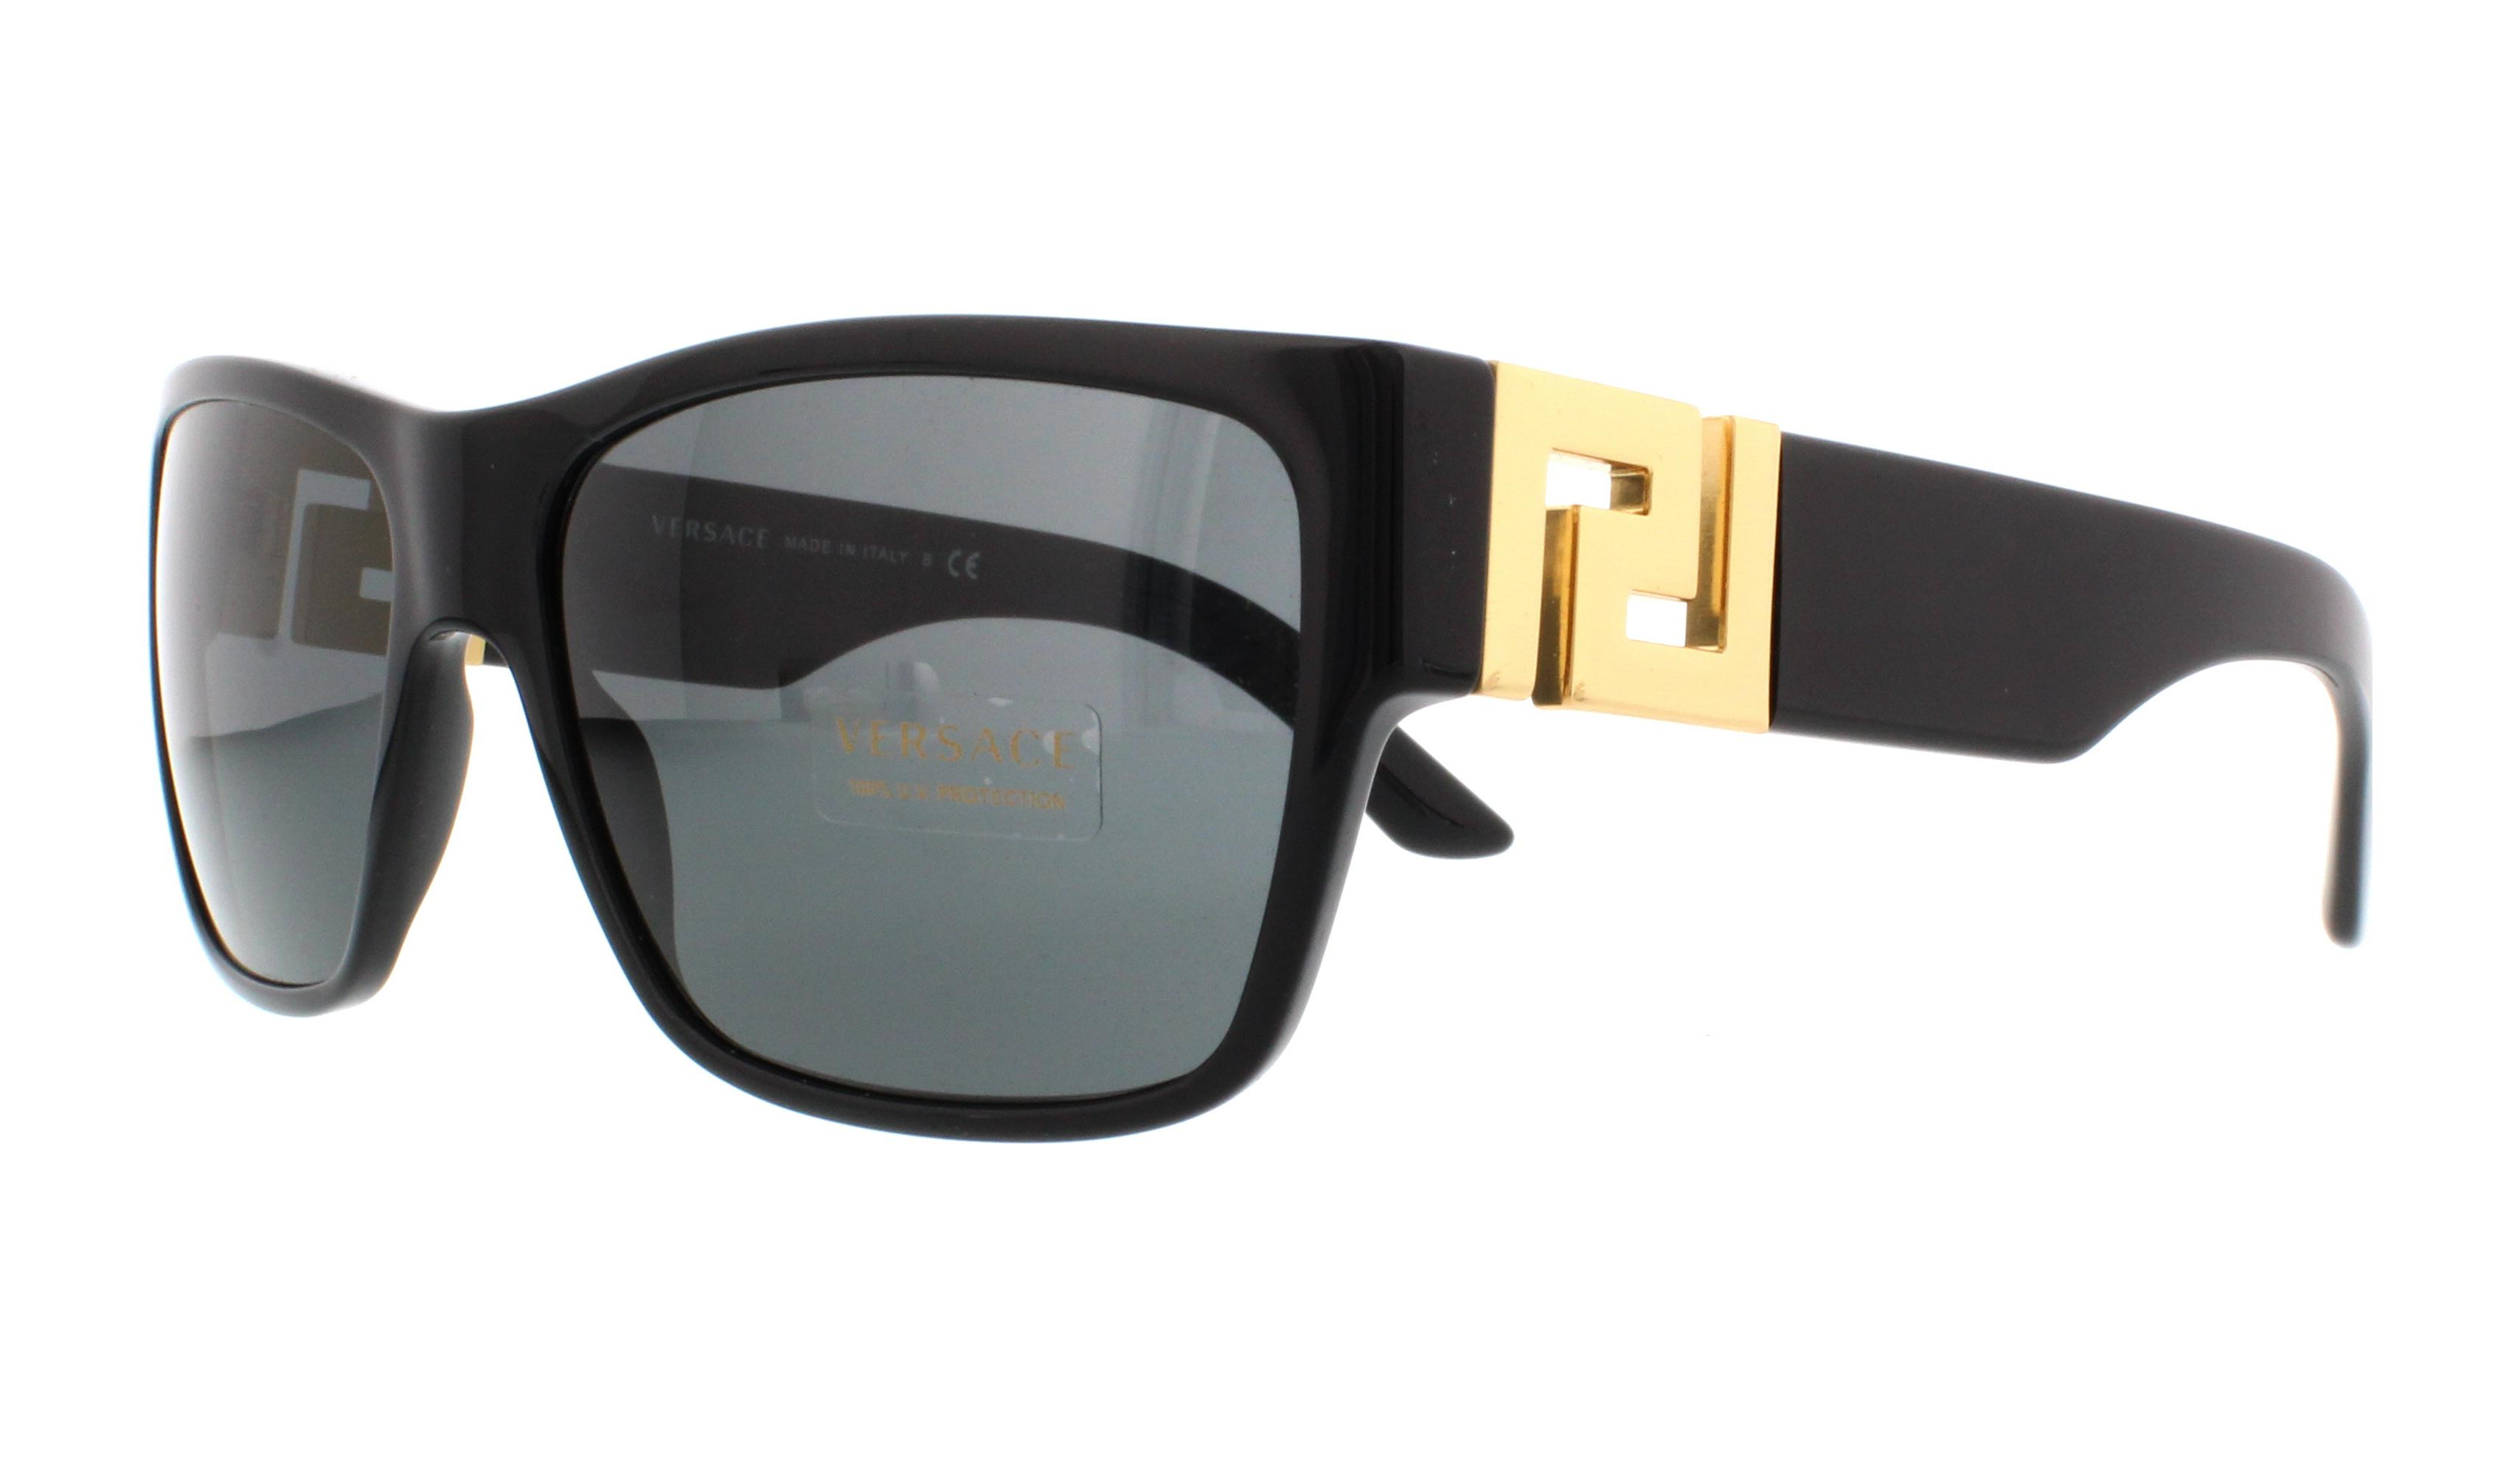 5657c107e4 Details about VERSACE Sunglasses VE4296 GB1 87 Black 59MM